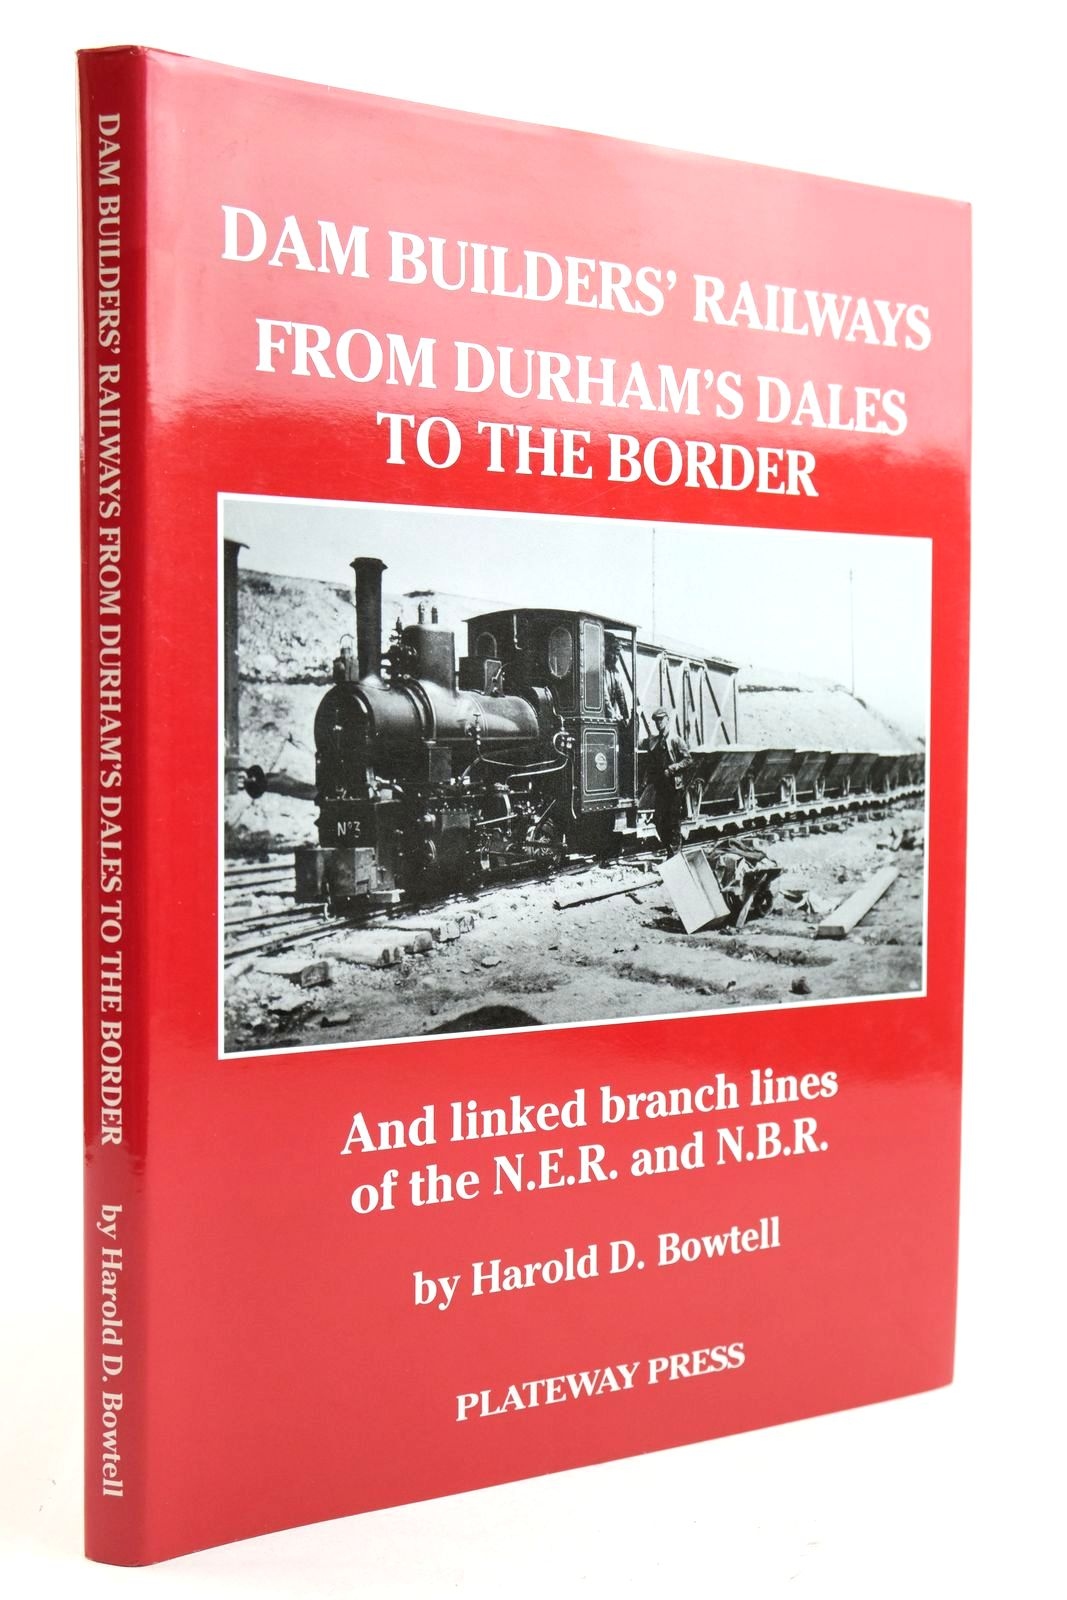 Photo of DAM BUILDERS' RAILWAYS FROM DURHAM'S DALES TO THE BORDER AND LINKED BRANCH LINES OF THE N.E.R. AND N.B.R. written by Bowtell, Harold D. published by Plateway Press (STOCK CODE: 2133130)  for sale by Stella & Rose's Books